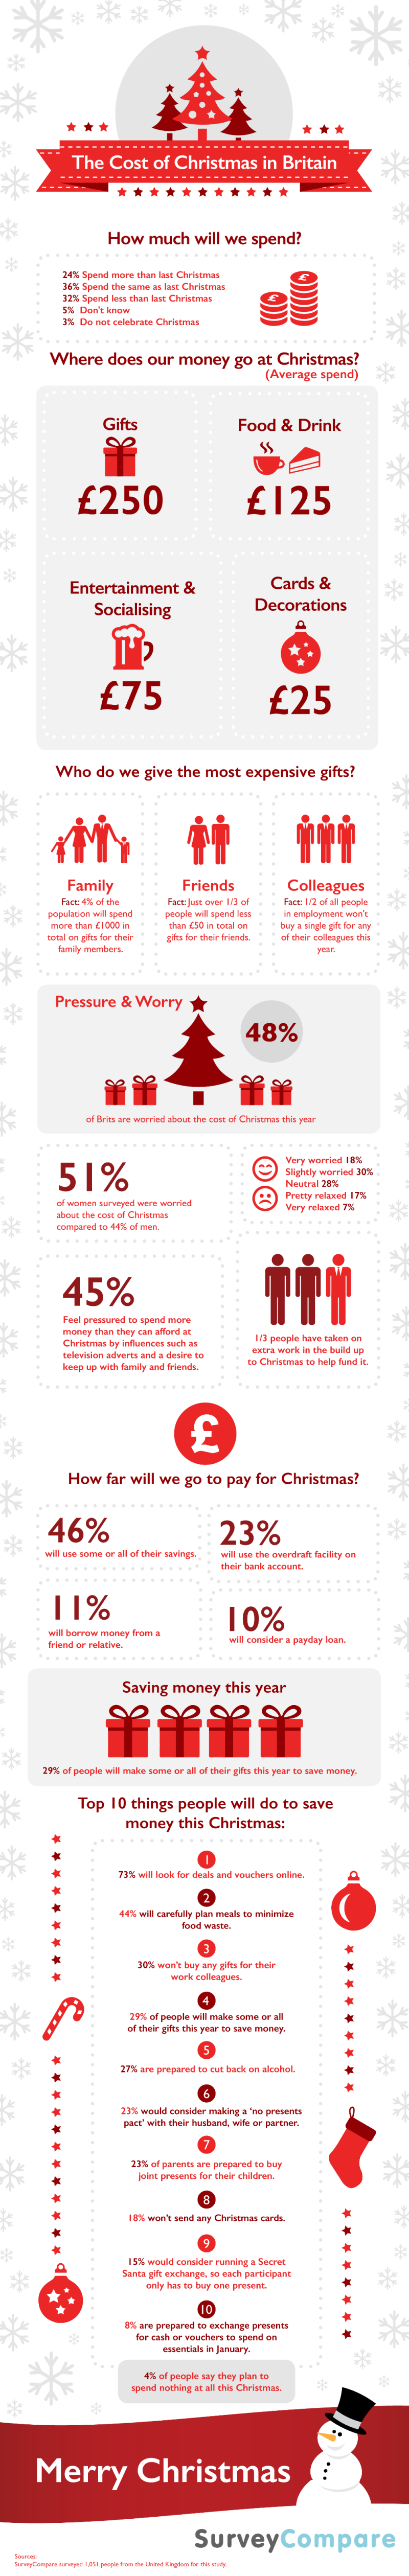 9 the-cost-of-christmas-in-britain-infographic-800